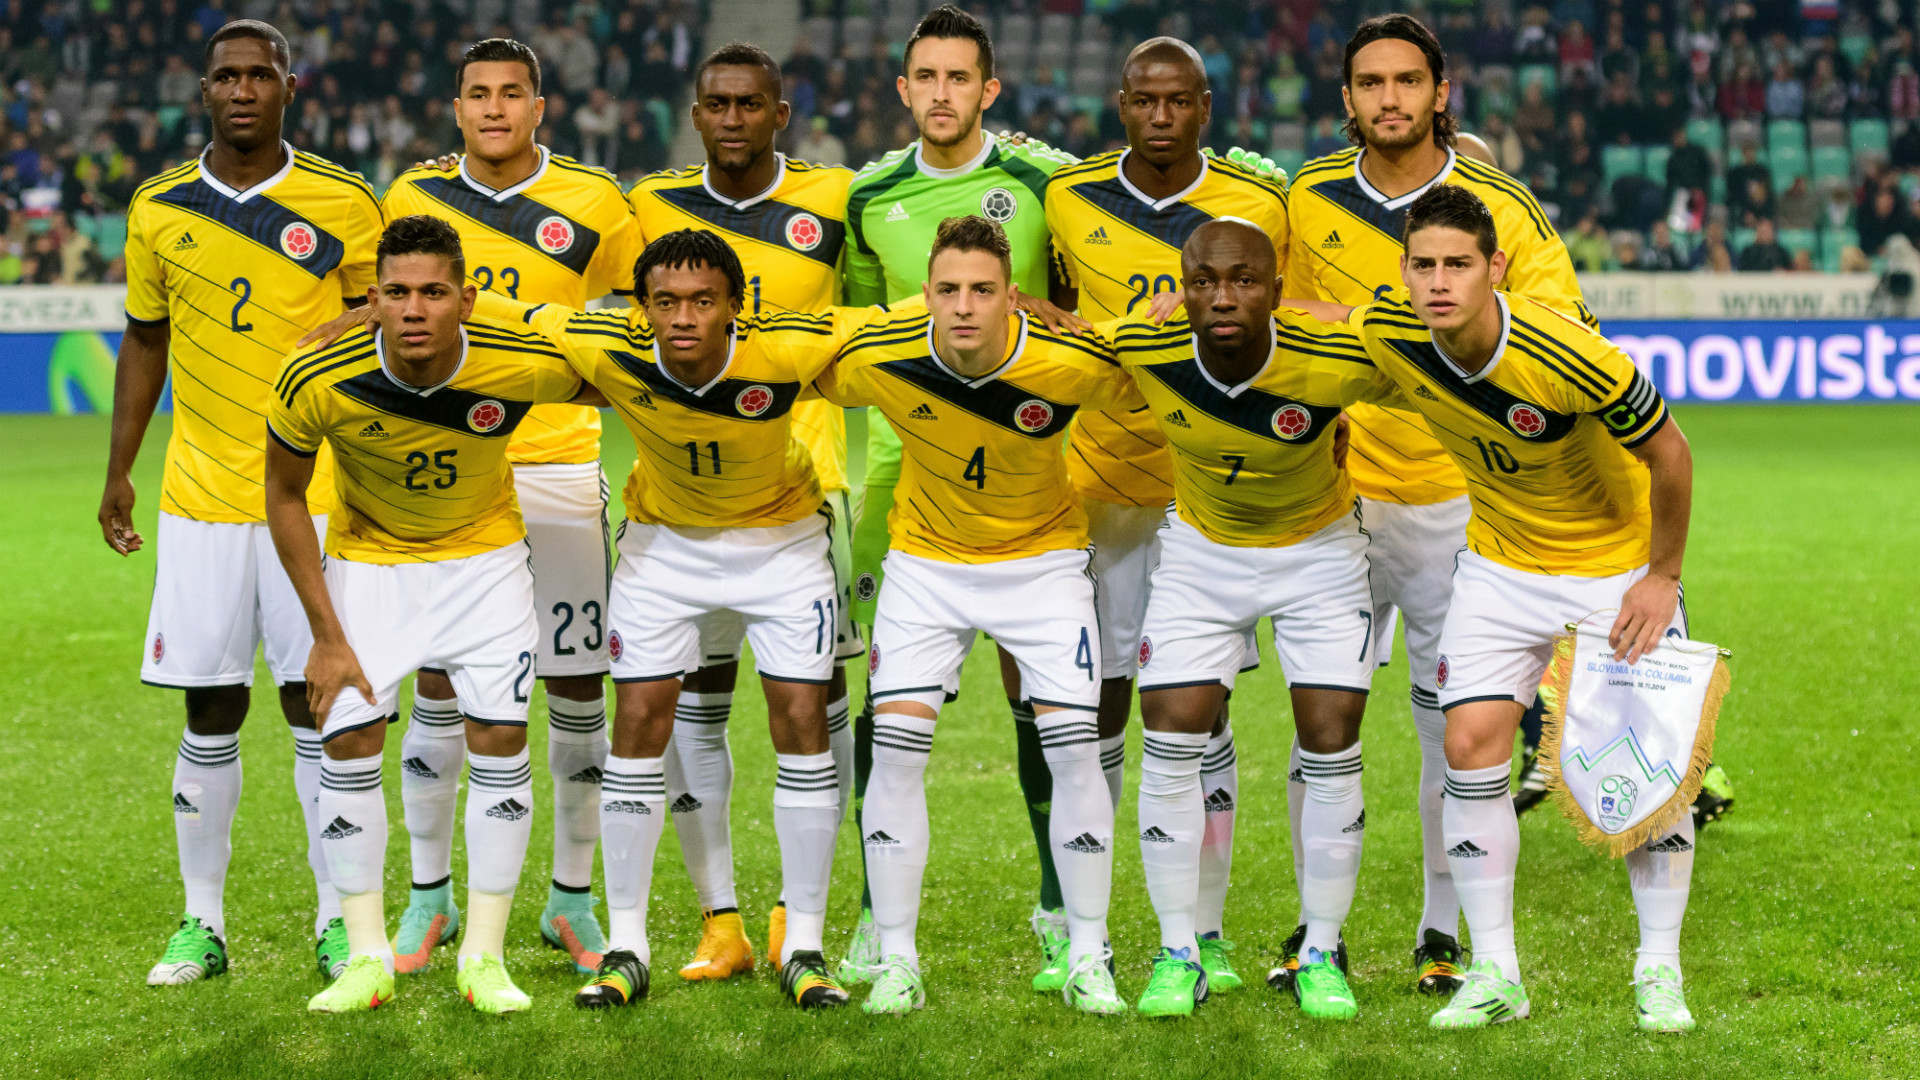 seleccion-colombia-vs-eslovenia_173497wf7suce1v0u0vw7zdyyb